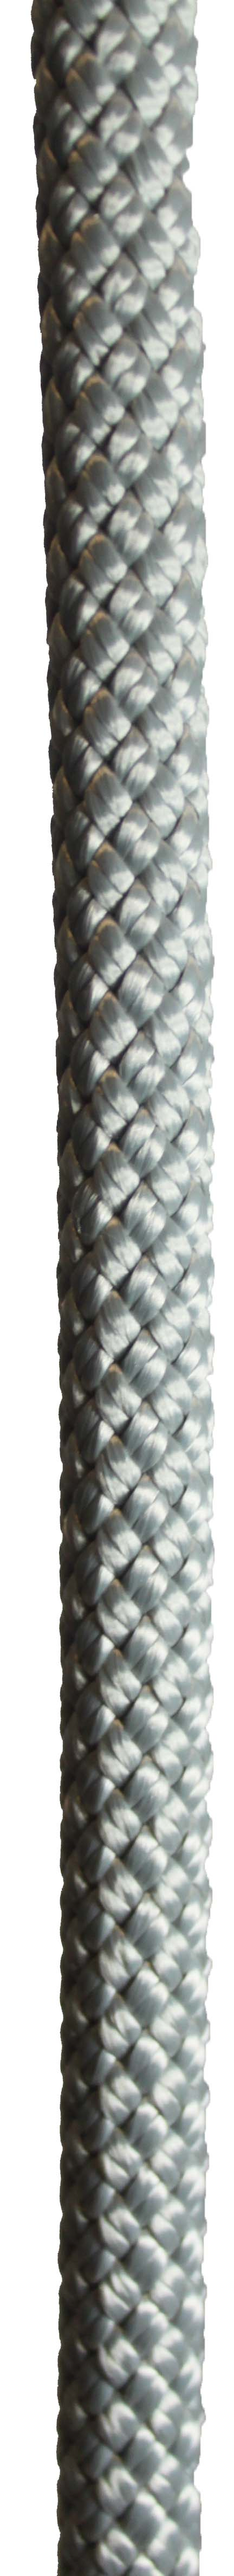 D2 Club Dyneema Rope